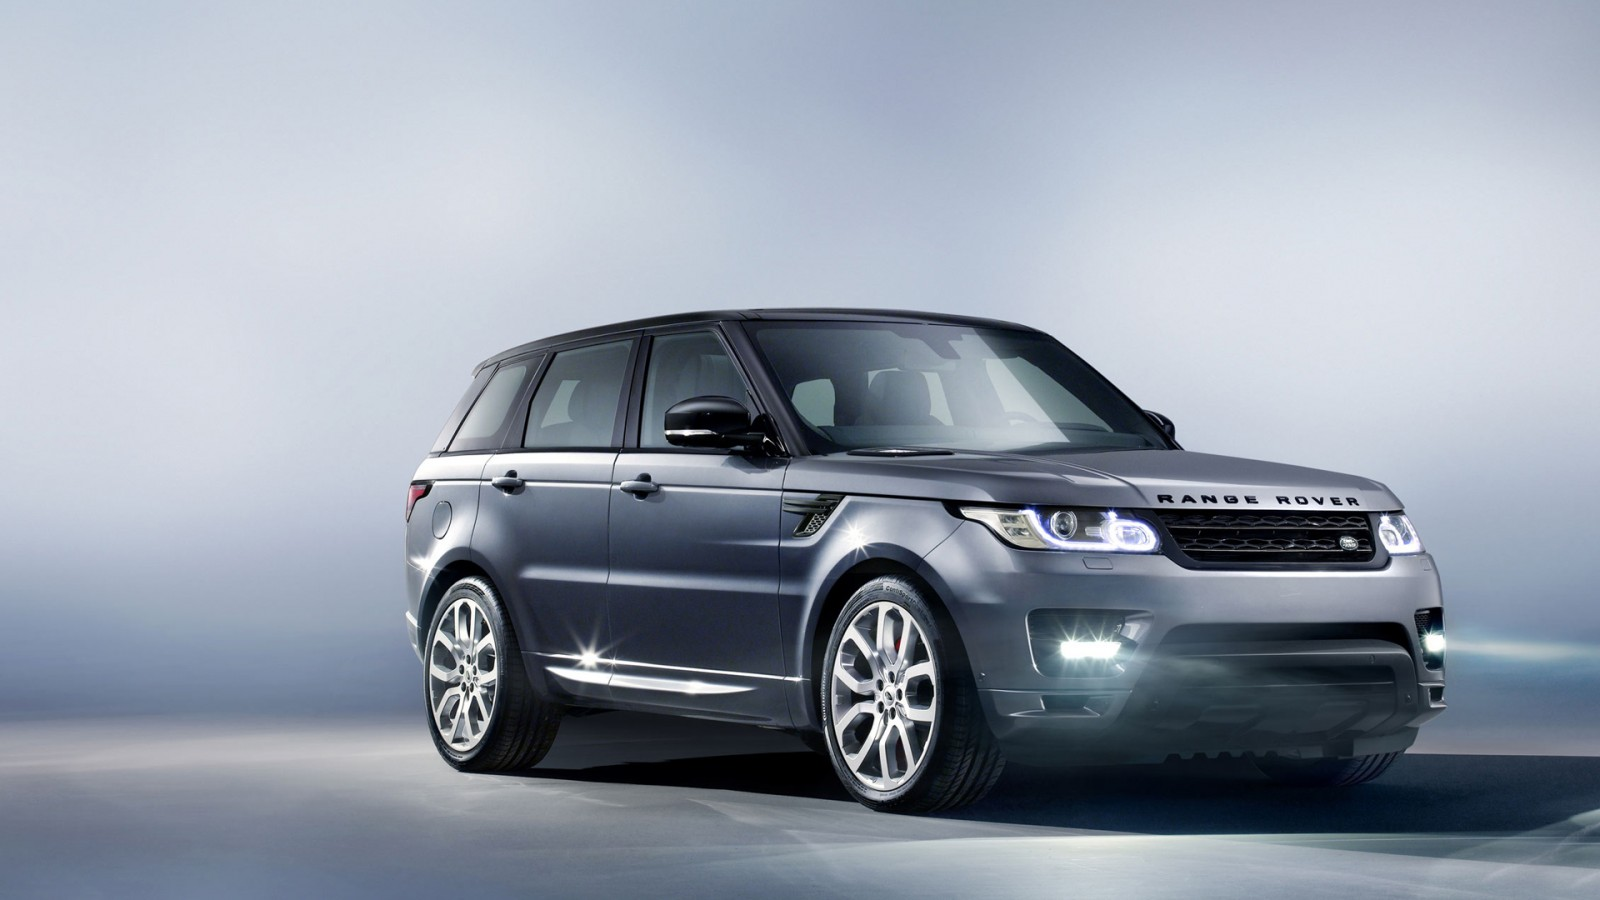 Range Rover Sport Iphone Wallpaper: 2014 Land Rover Range Rover Sport 2 Wallpaper